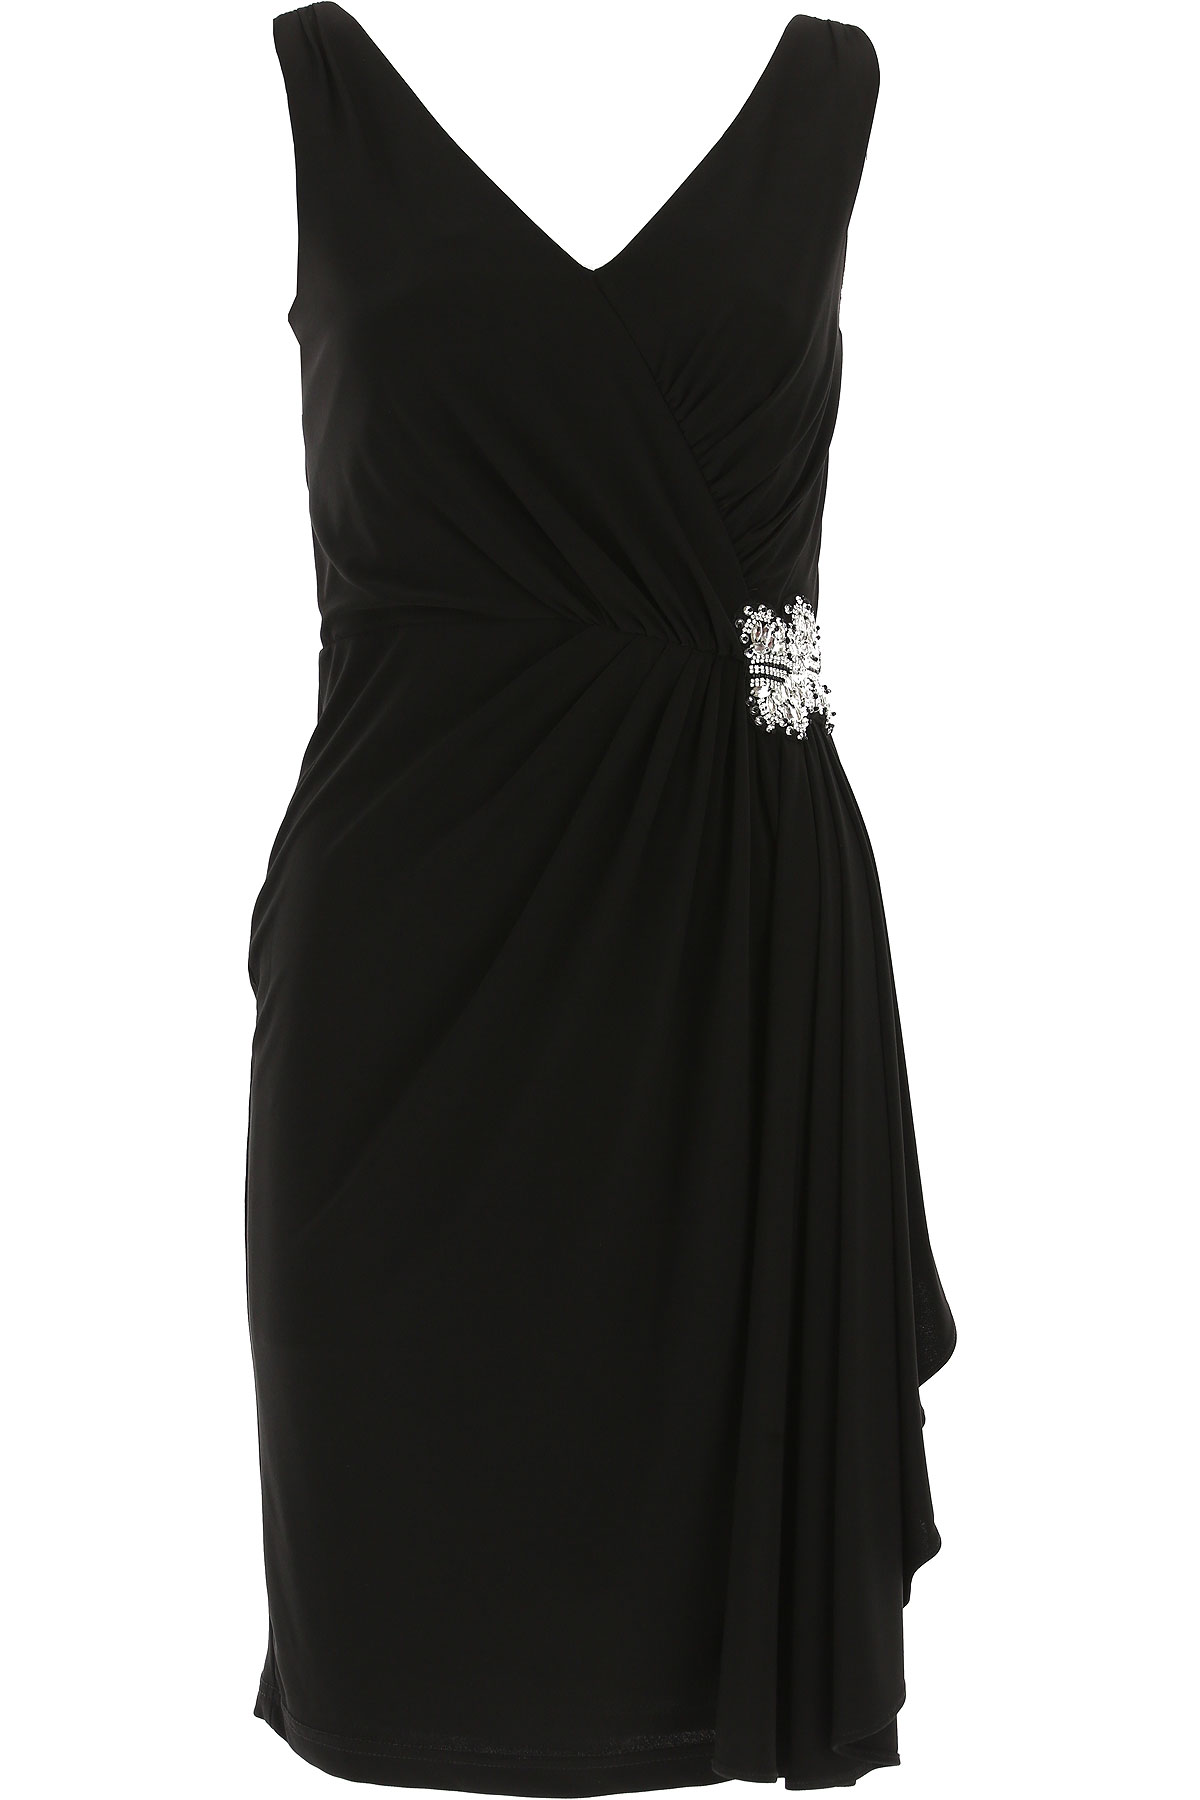 Image of Joseph Ribkoff Dress for Women, Evening Cocktail Party, Black, polyester, 2017, 10 12 6 8